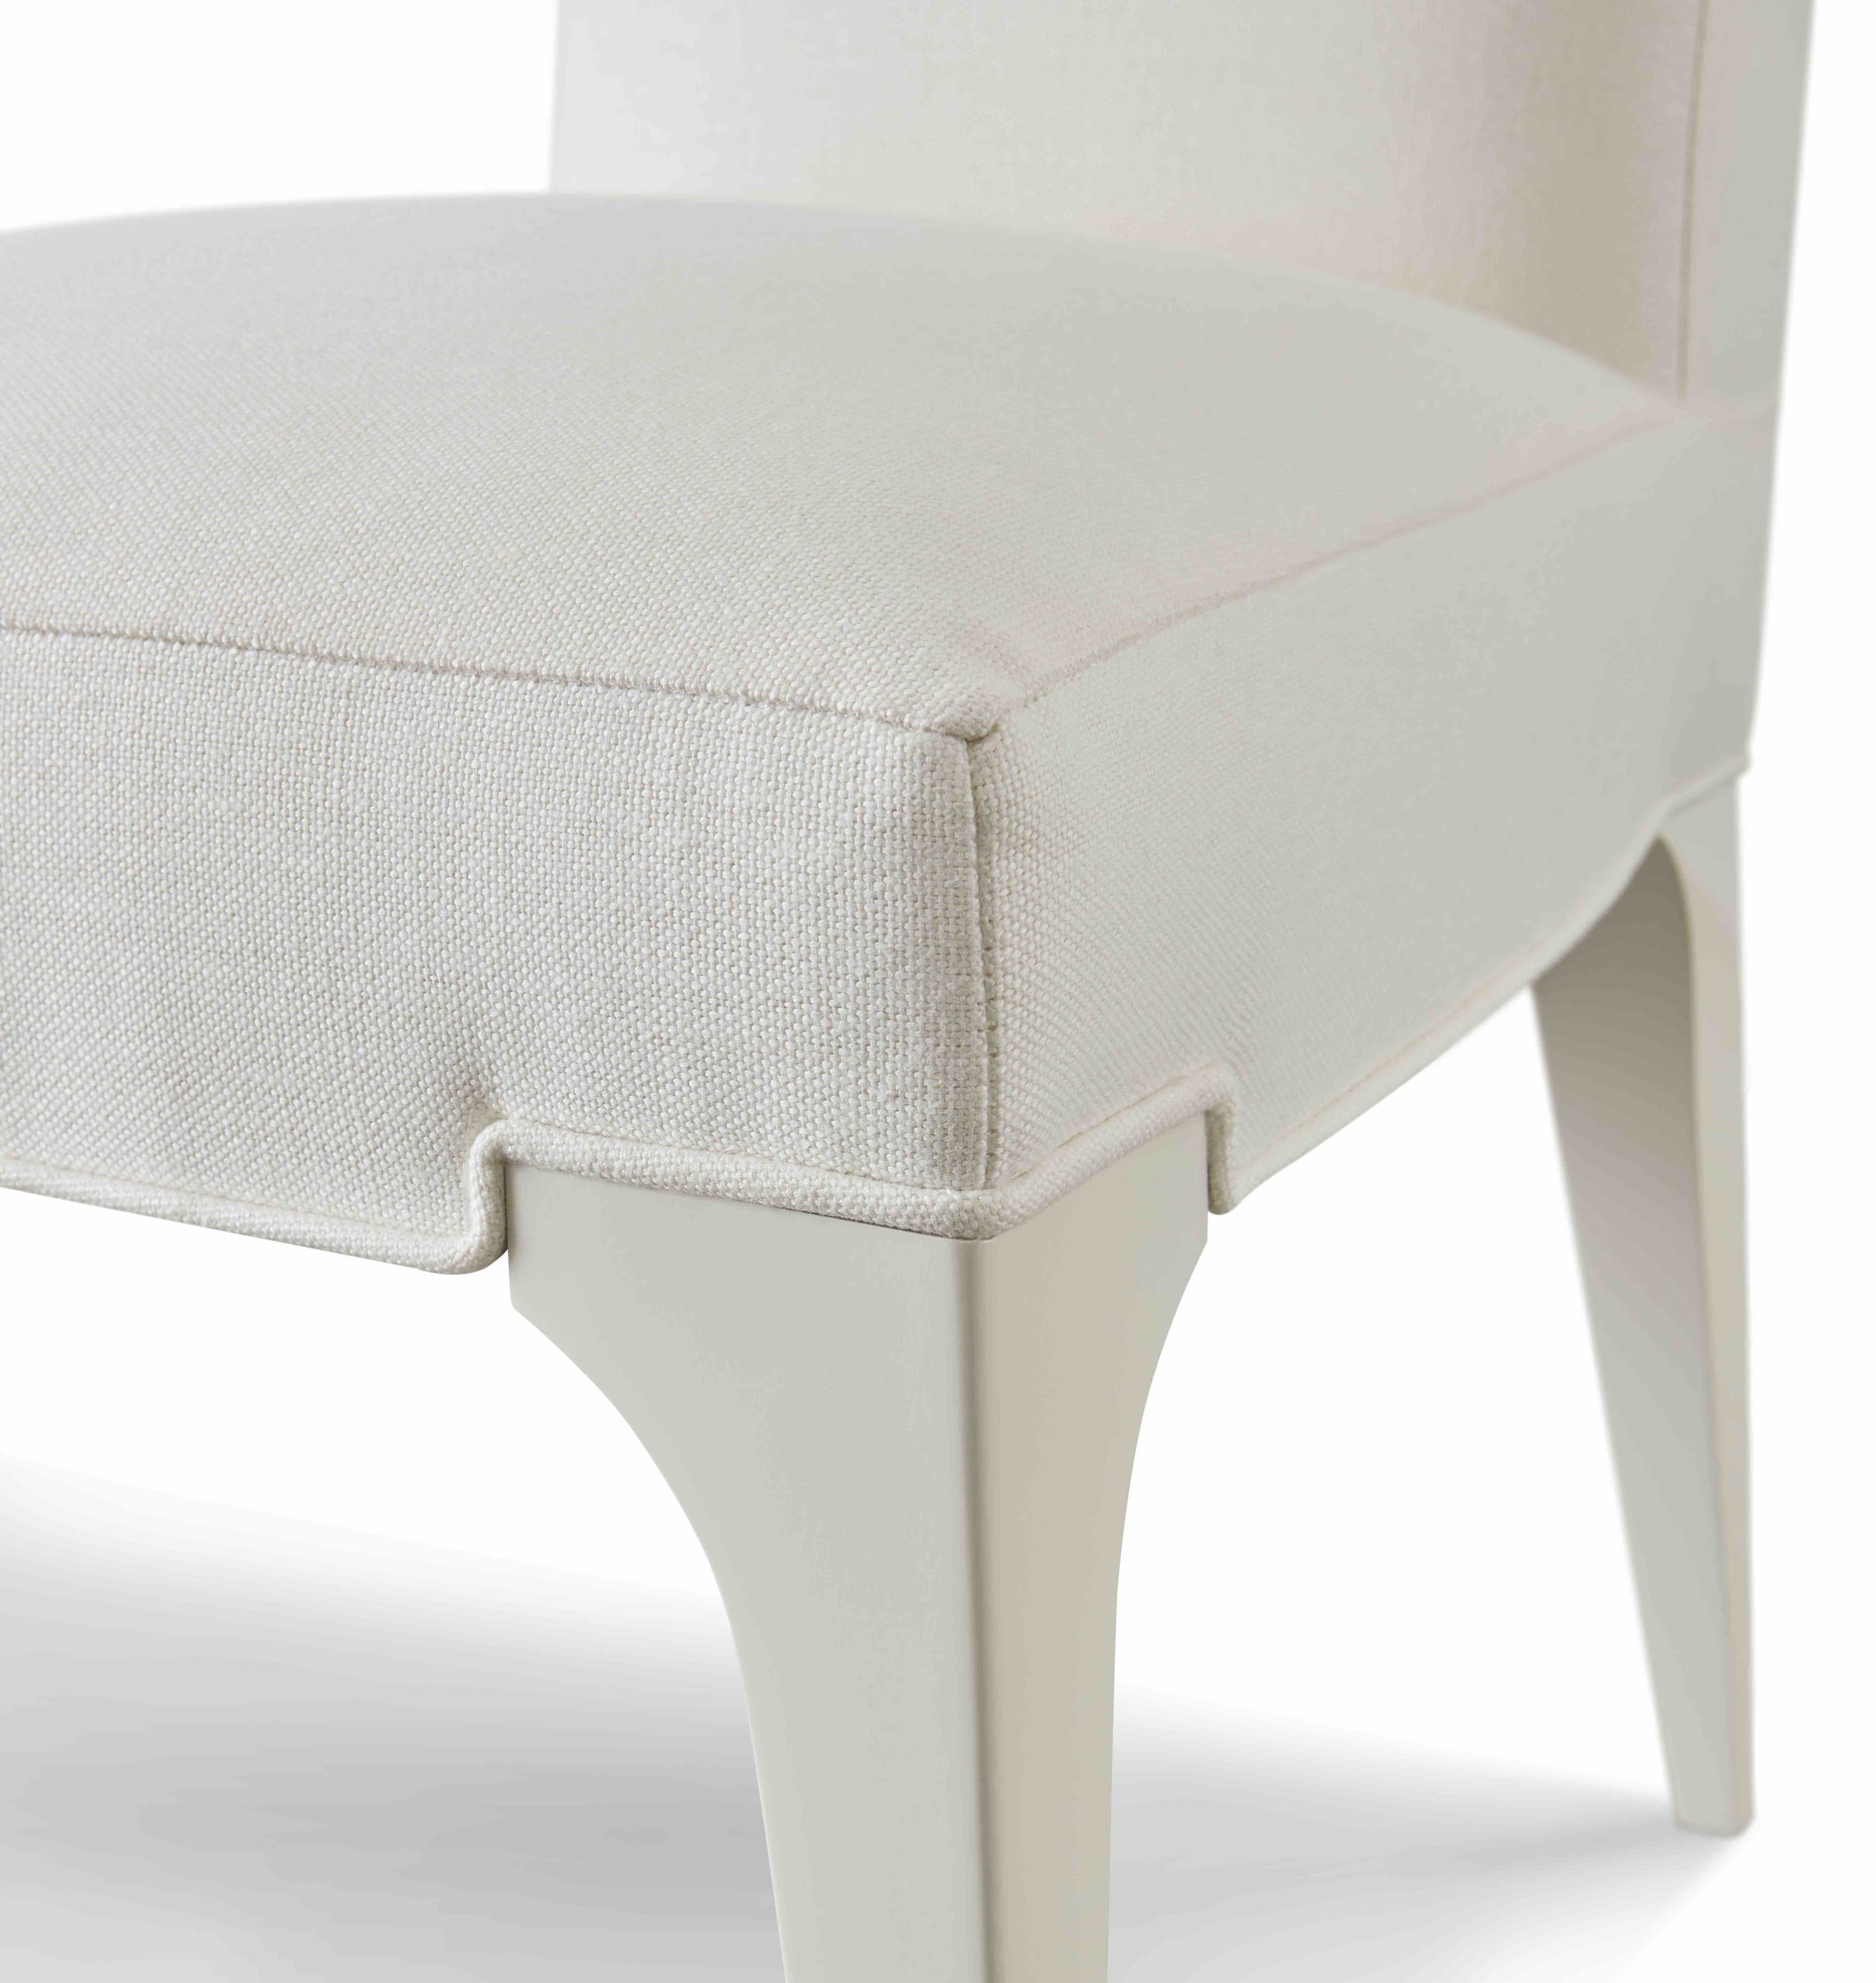 Baker_products_WNWN_declan_chair_BAA3041_DETAIL-scaled-2